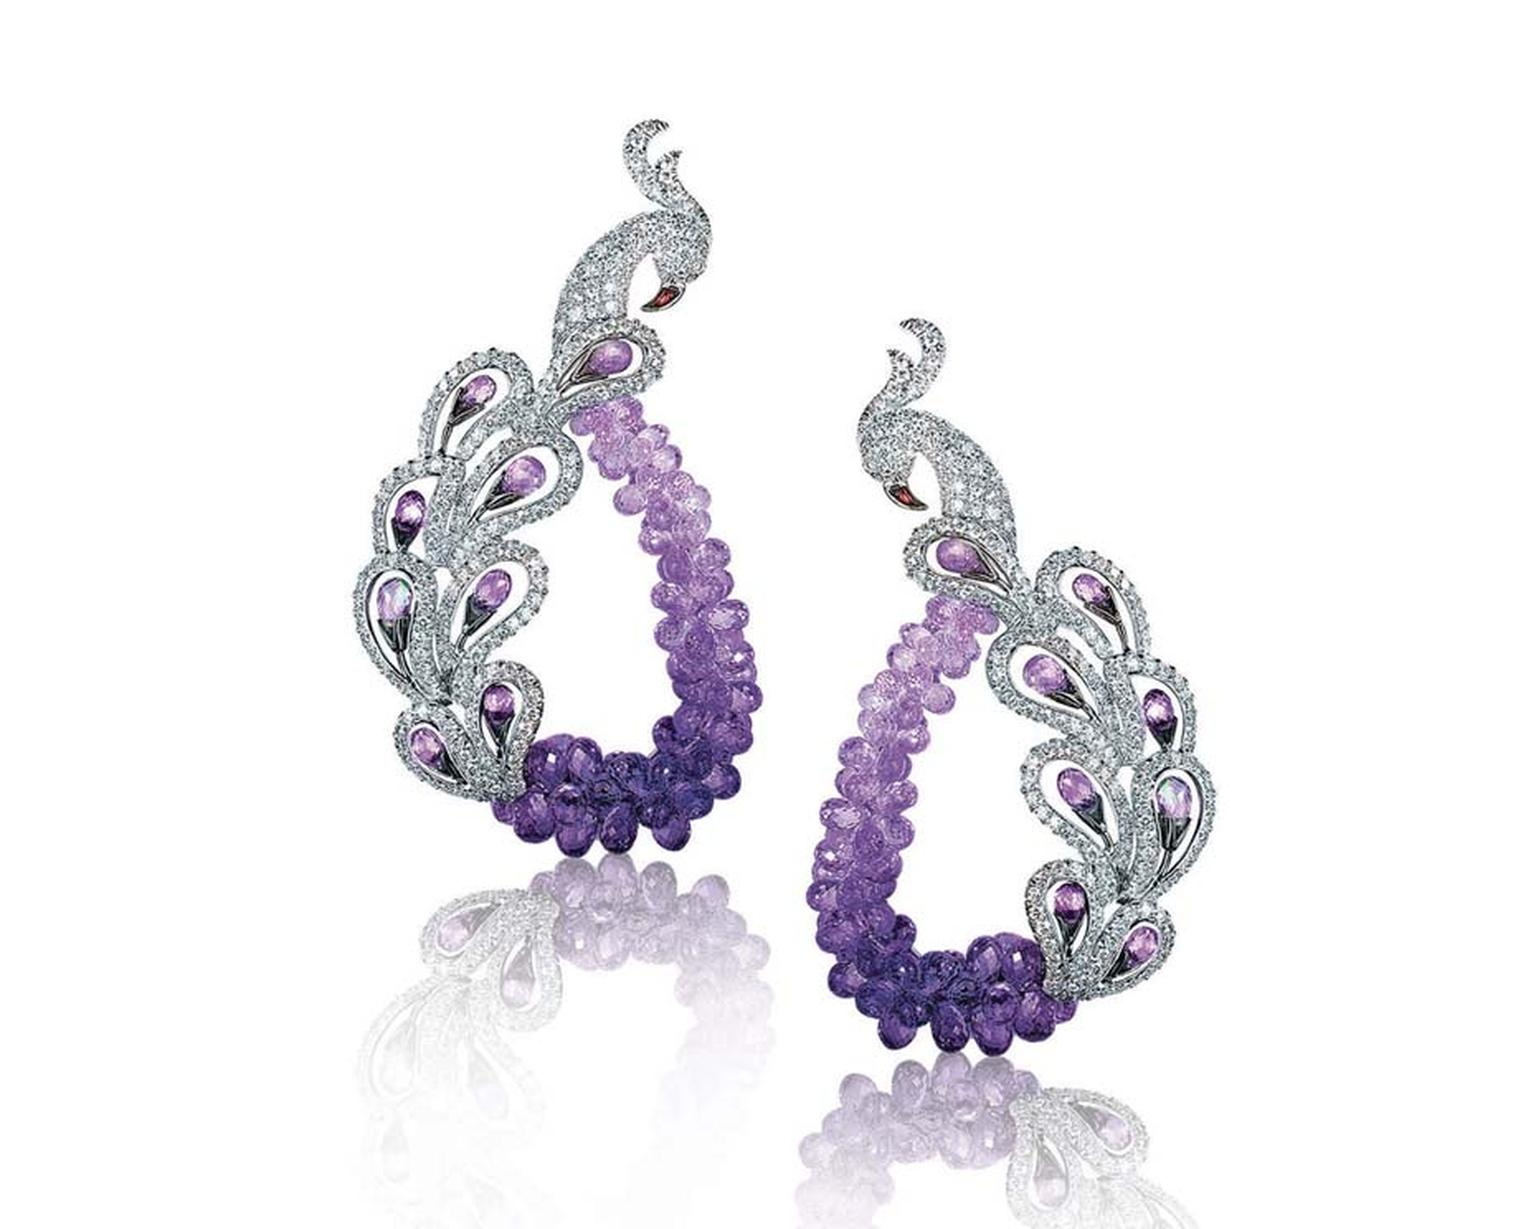 Mirari signature Peacock earrings featuring amethyst briolettes.